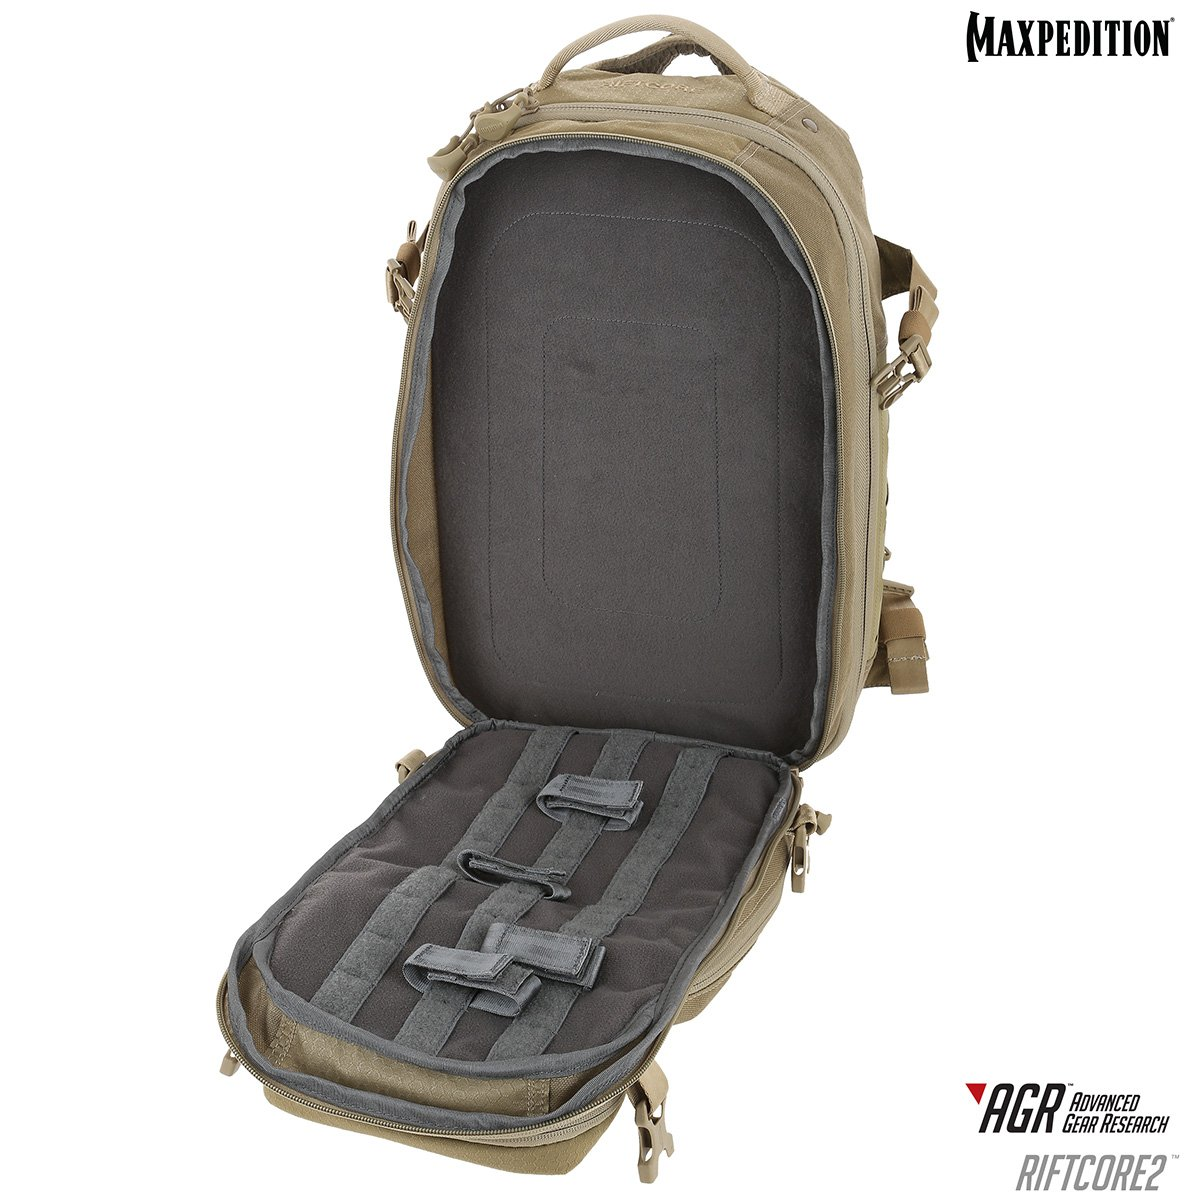 Balo Maxpedition Riftcore v2.0 CCW-Enabled 23L